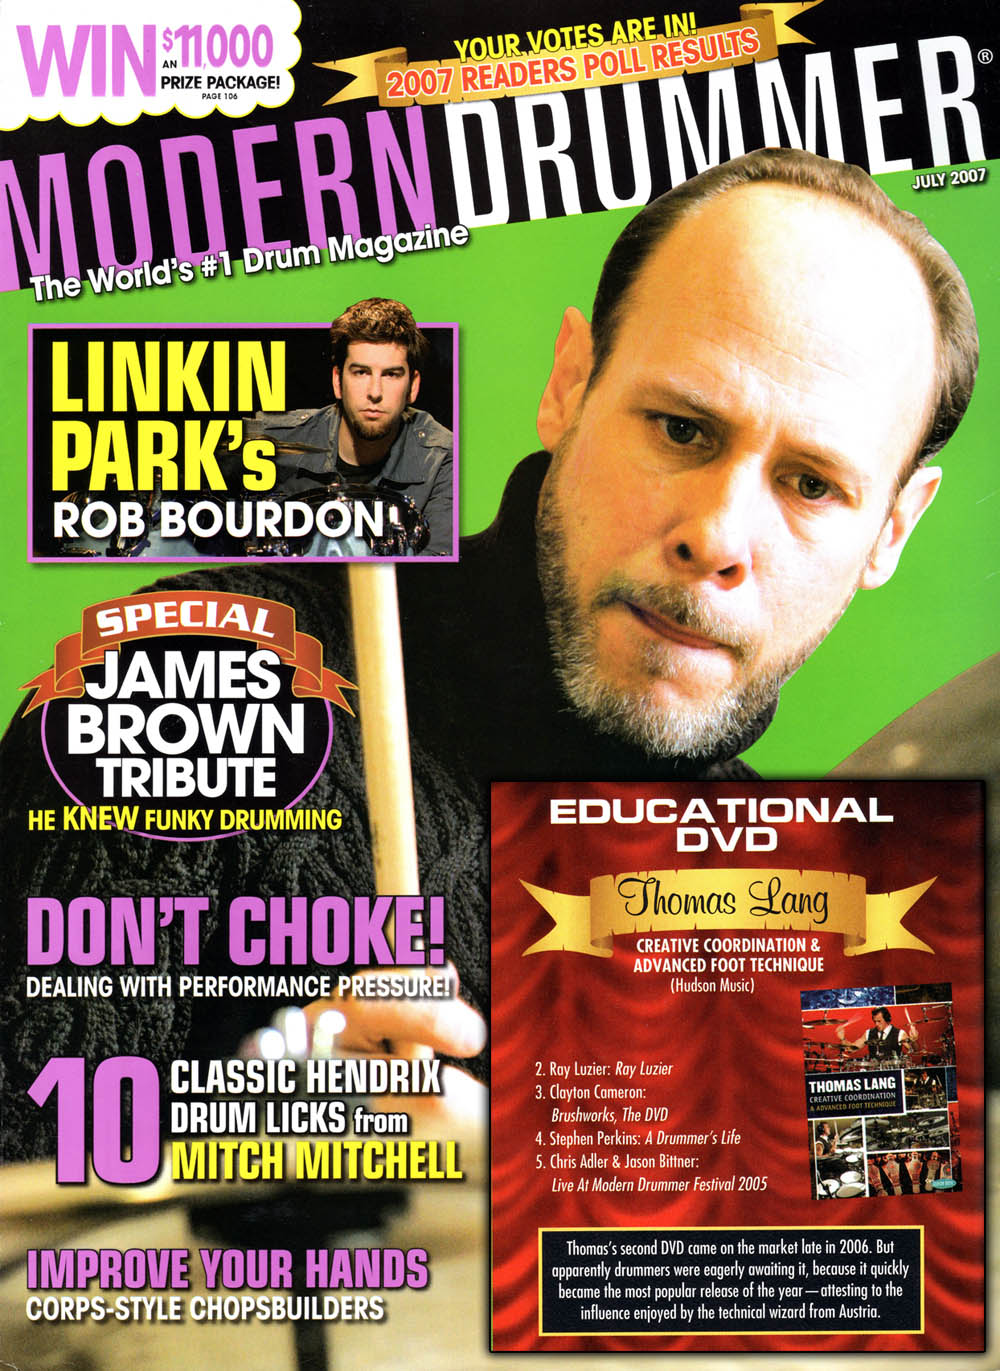 A Drummer's Life ranked in the Modern Drummer Reader's Poll